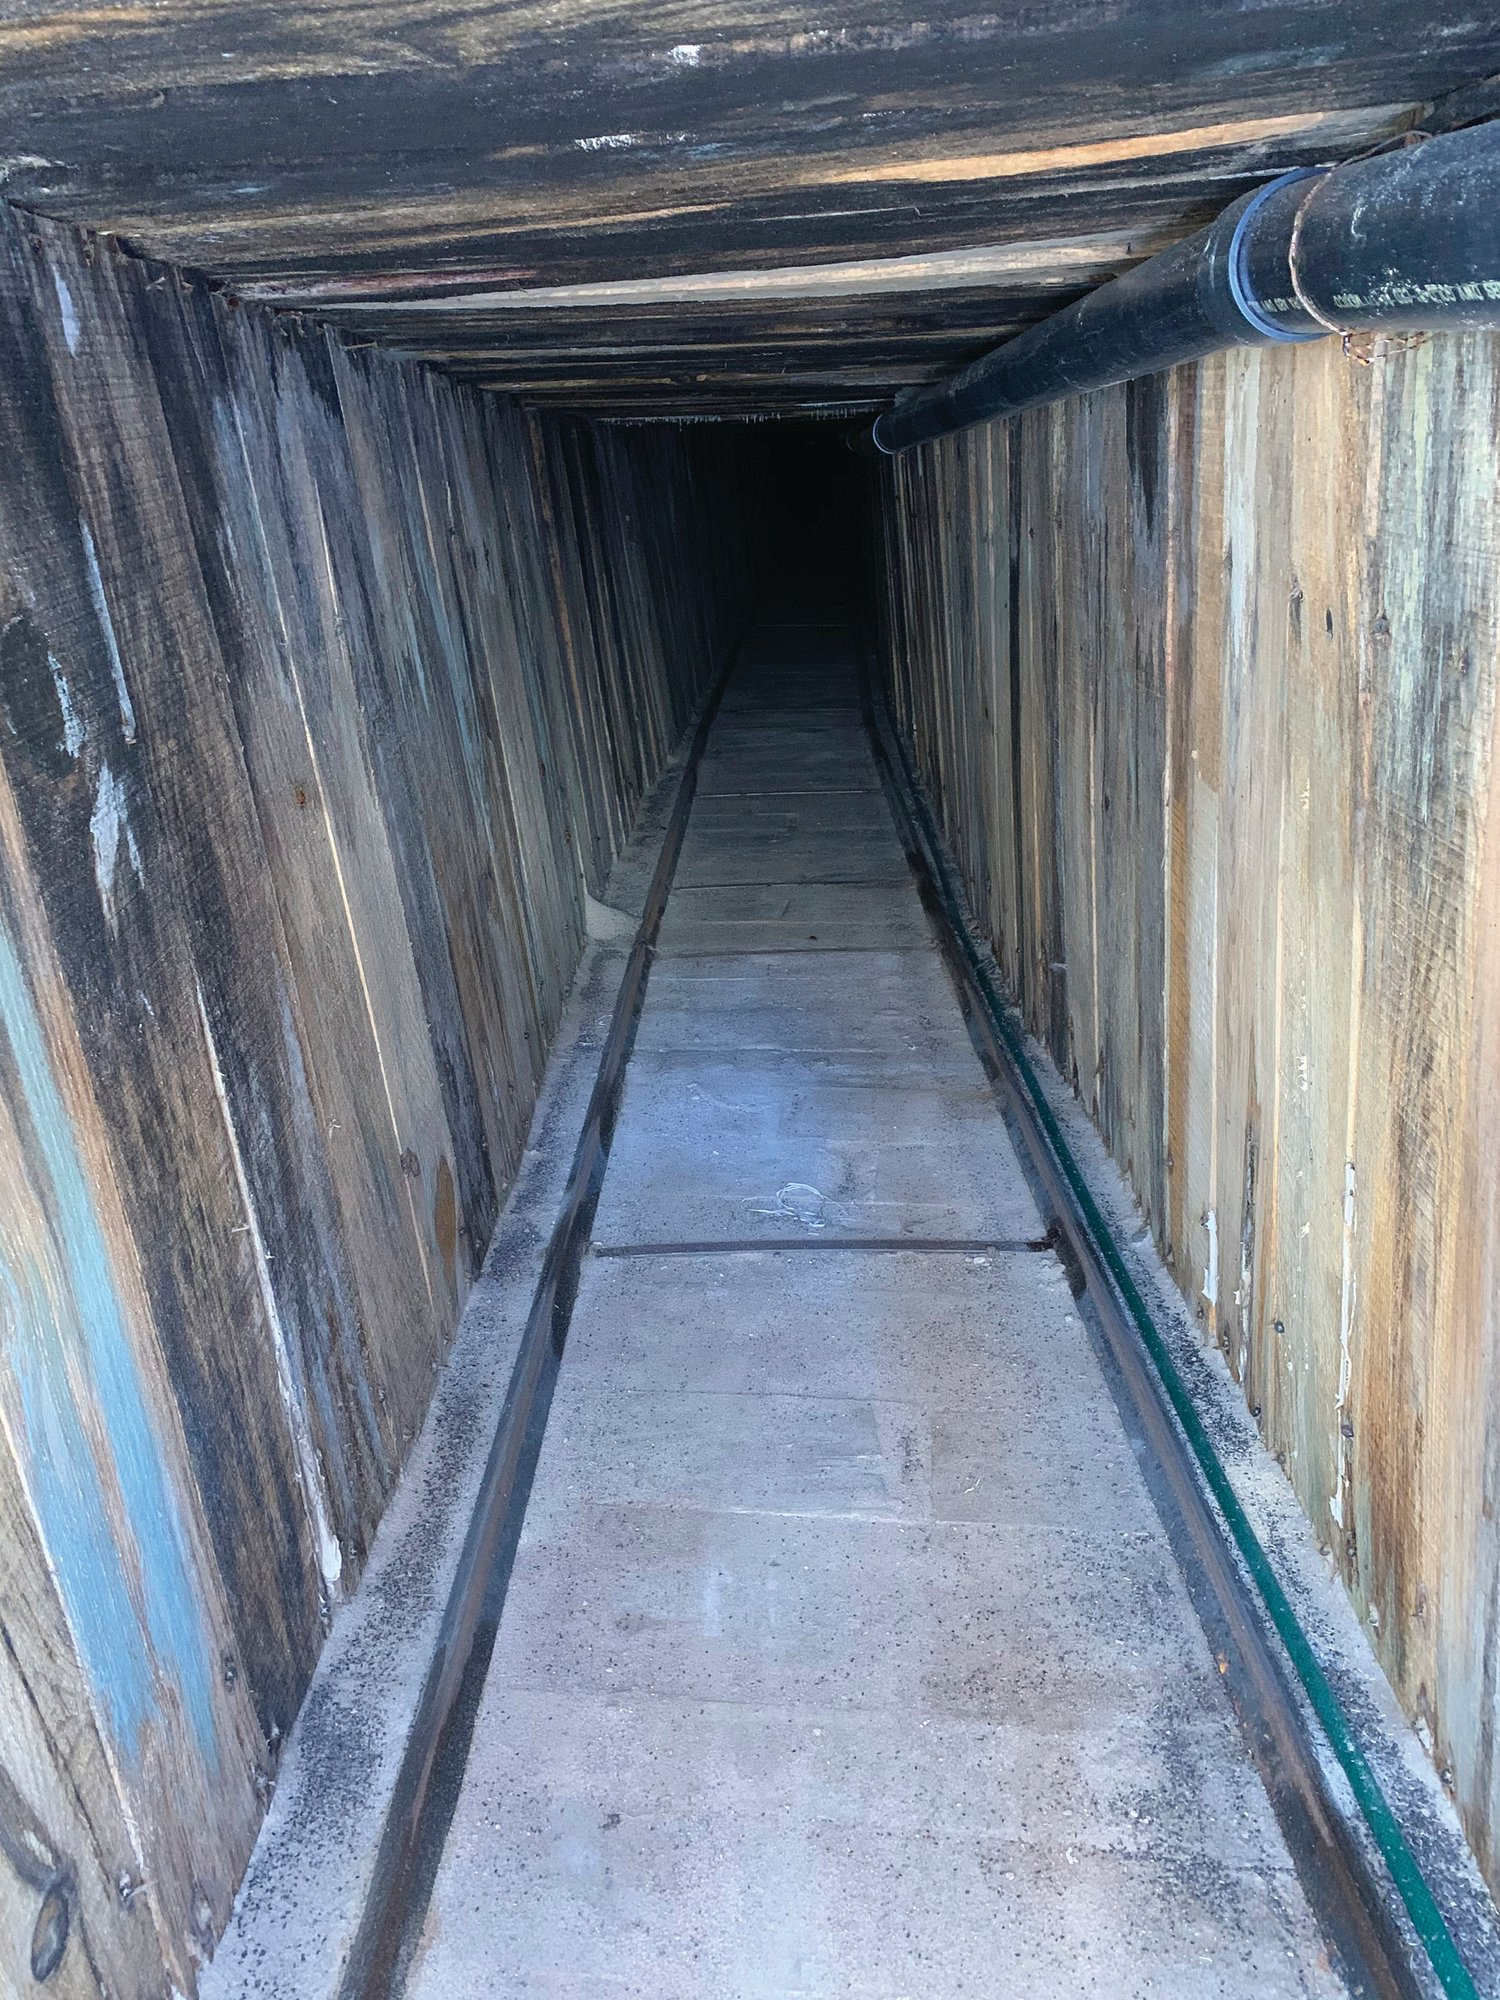 PHOTOS COURTESY OF ICE VIA APThe photo provided by U.S. Immigration and Customs Enforcement shows sections of an incomplete tunnel intended for smuggling, found stretching from Arizona to Mexico.